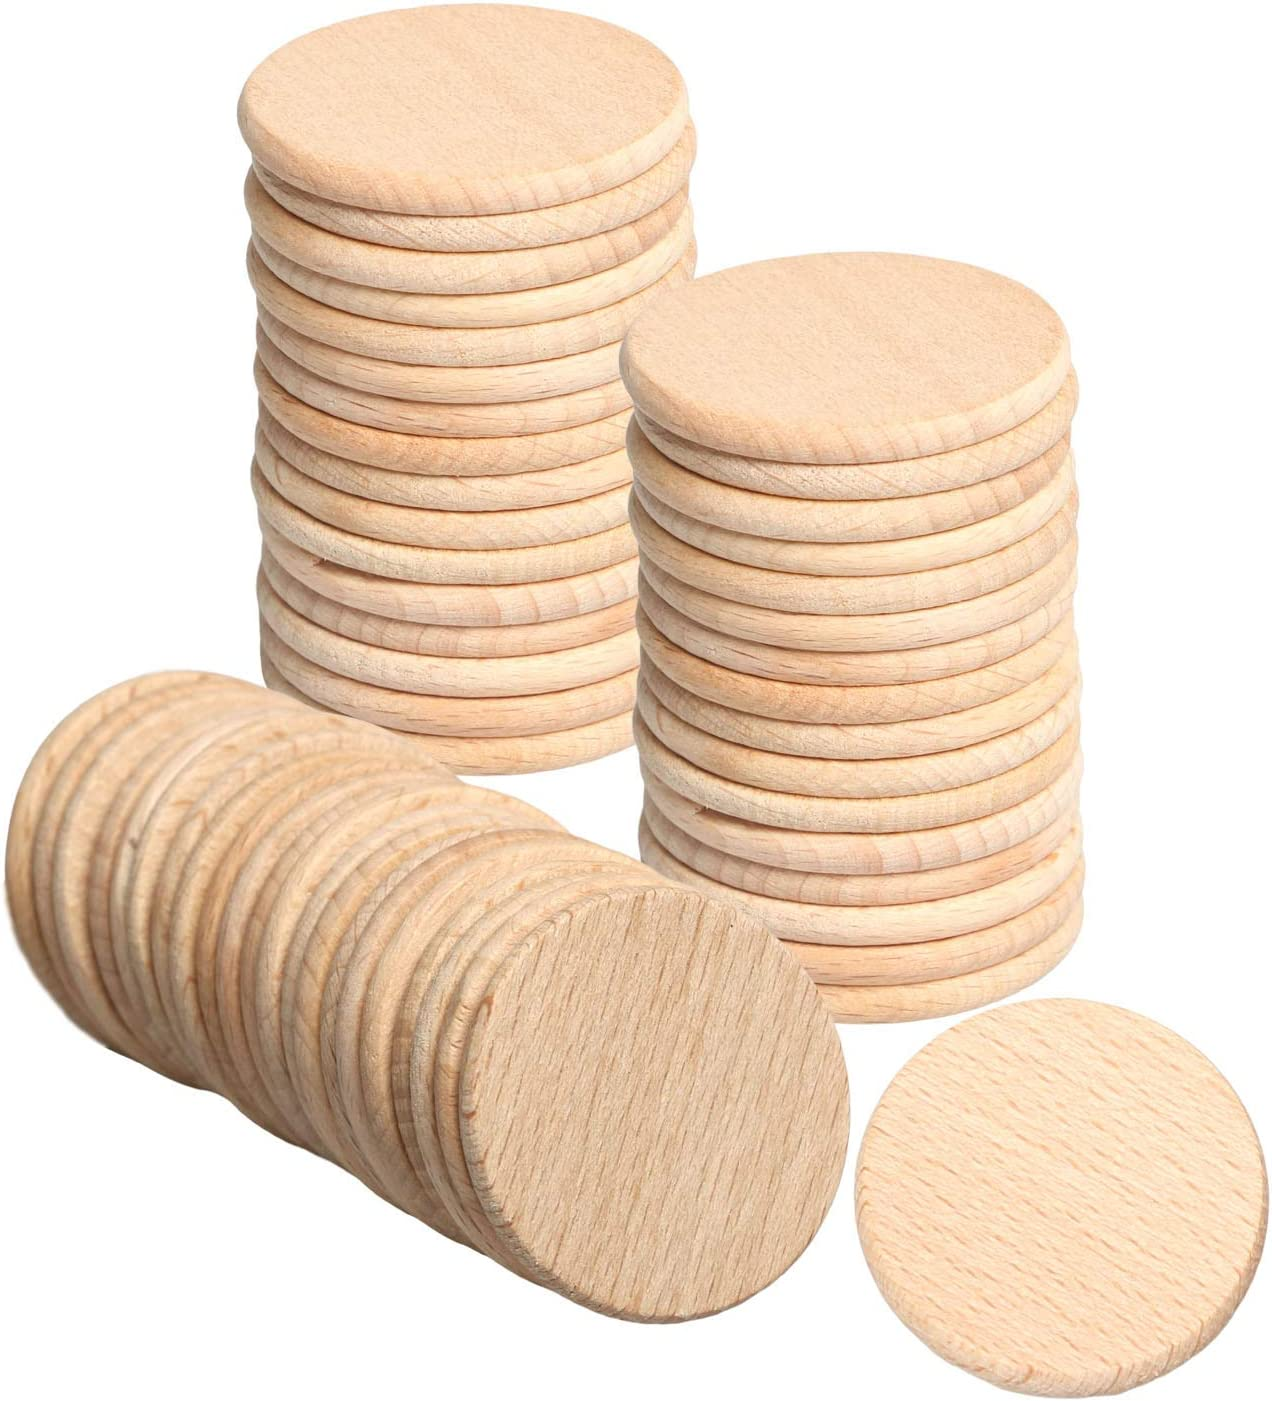 2 Inch Wood Circles 50pcs Unfinished Round Discs Blank Wooden Cutout Slices